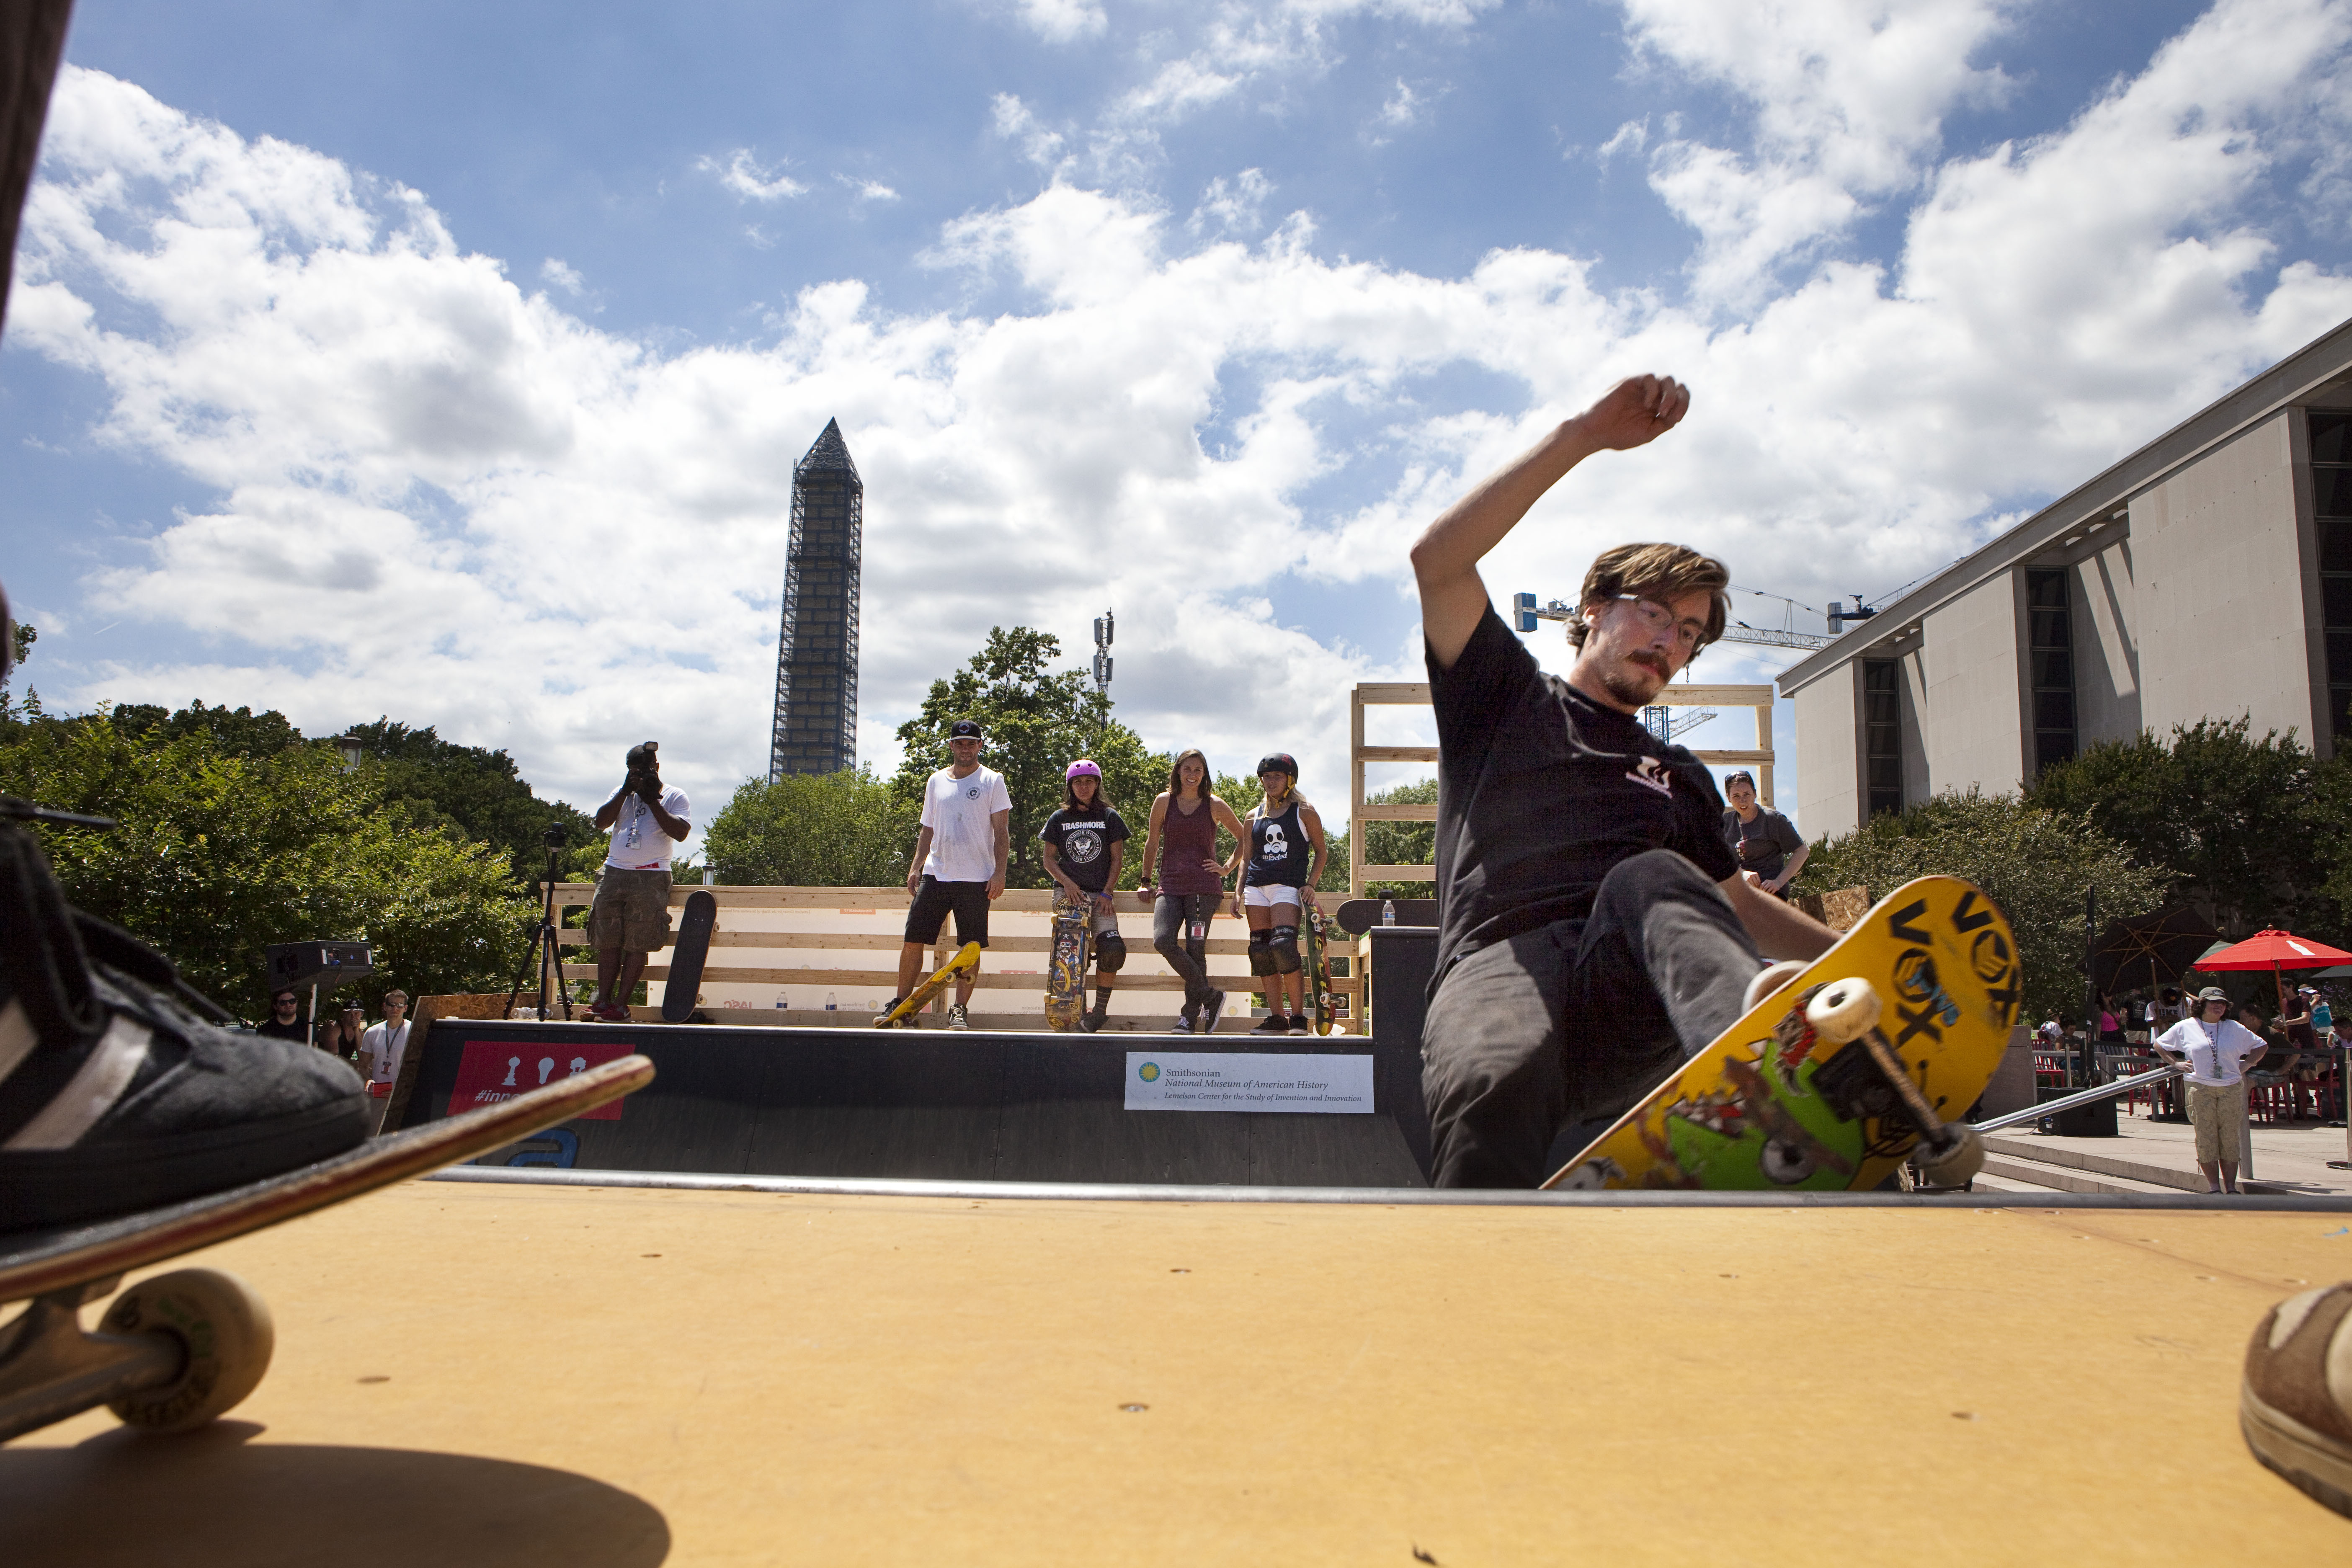 Shaun Gregoire rides the mini ramp in front of the Washington Monument and the National Museum of American History.